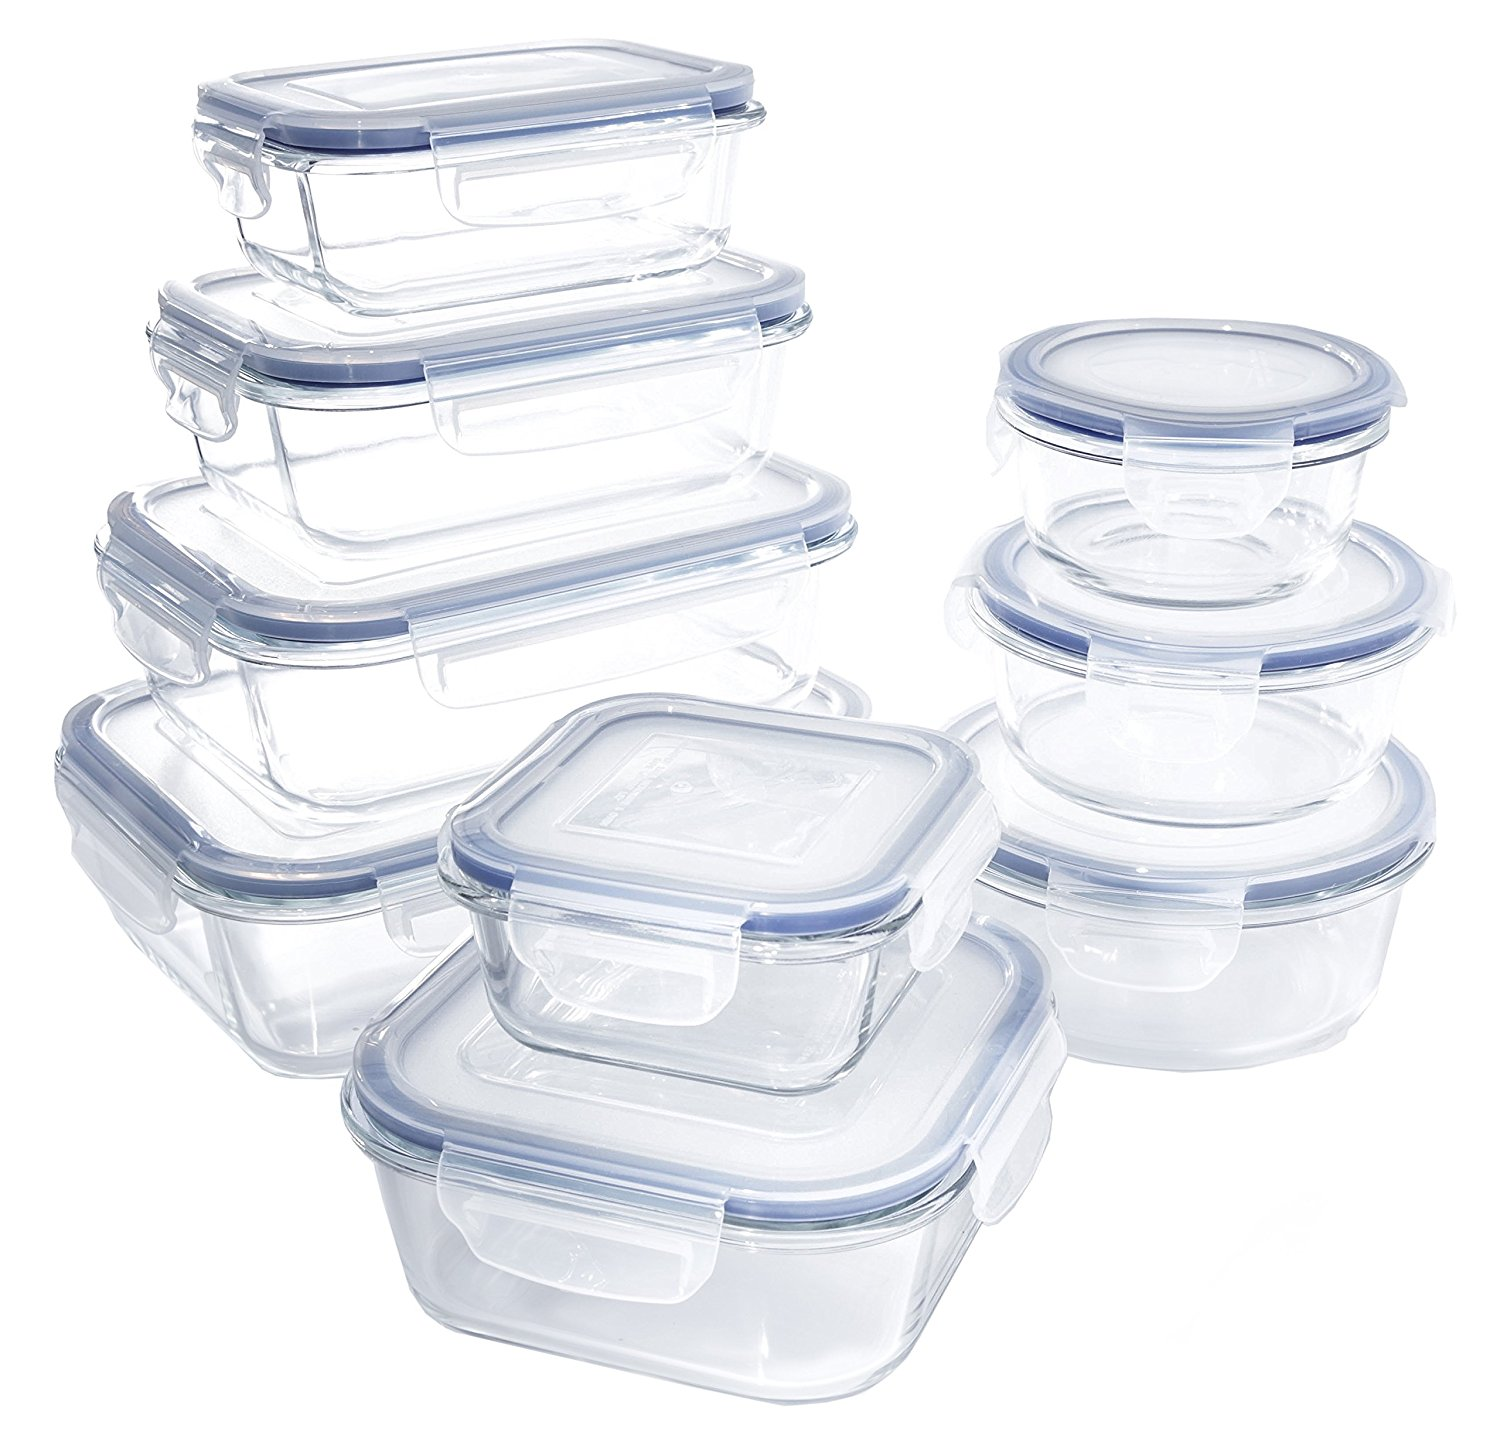 Beau 18 Piece Glass Food Container Set With Locking Lids   BPA Free    Dishwasher, Oven